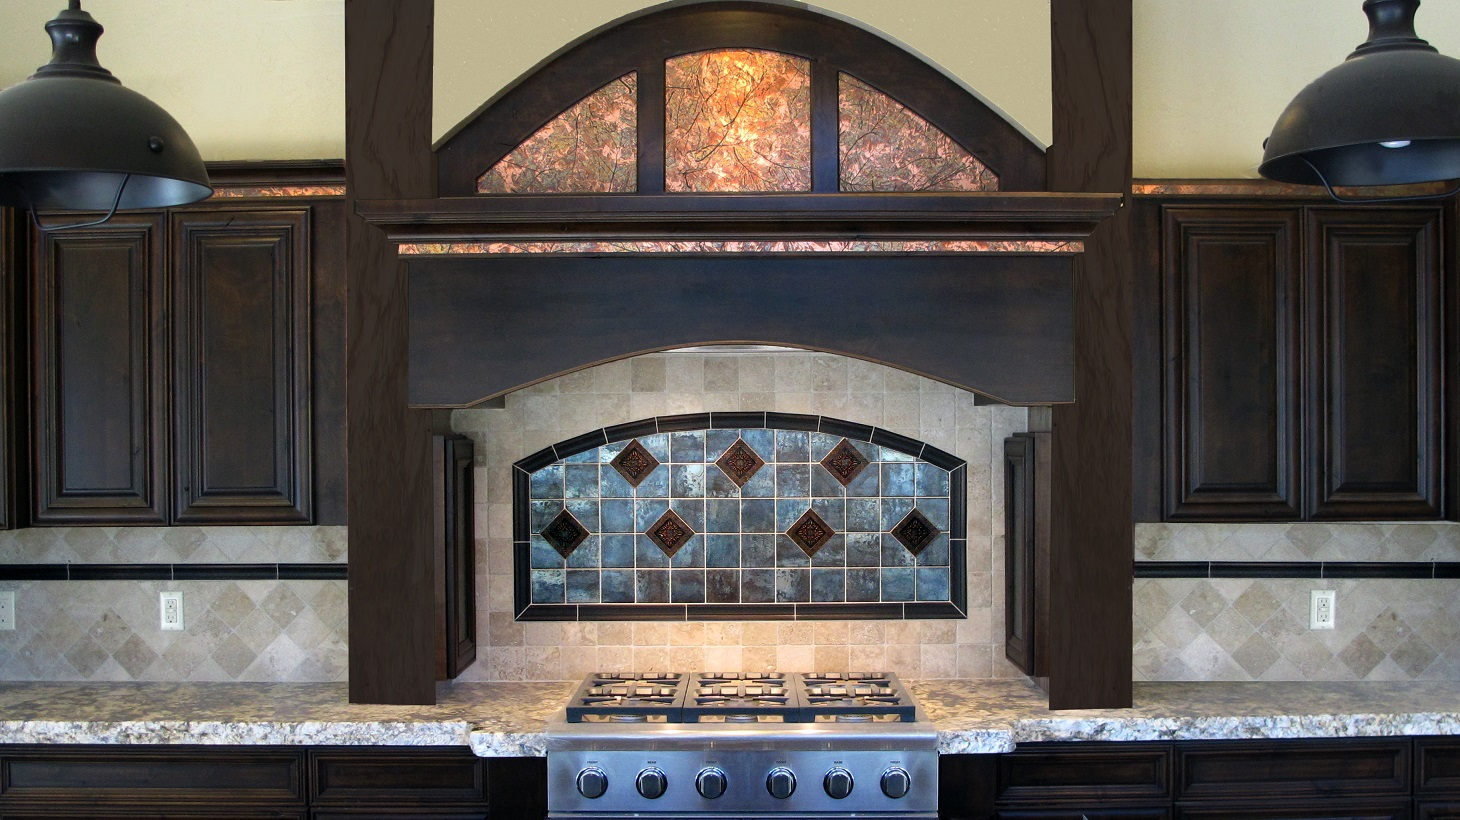 Kitchen rustic espresso cabinets custom arch gas range cook top granite countertops  travertine backsplash natural stone light beige metal metallic chair rail arch stove accent Emser Statements